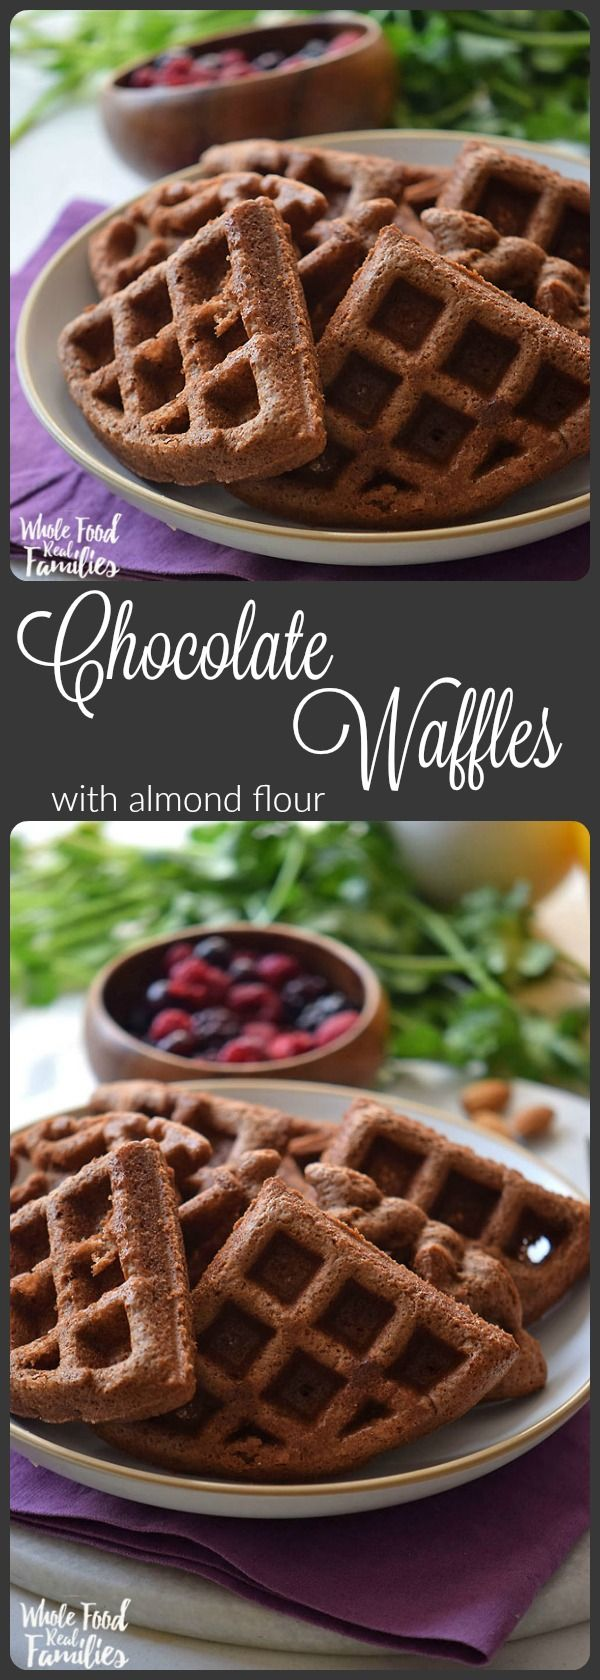 This Chocolate Waffle Recipe is rich and decadent - but still healthy enough for breakfast. It is even gluten-free if that a requirement. For those of us who eat without restrictions, the almond flour gives these Chocoalte Waffles a wonderful, rich flavor. A tip, make these ahead and freeze for those early mornings when you just can't manage breakfast any other way. @wholefoodrealfa